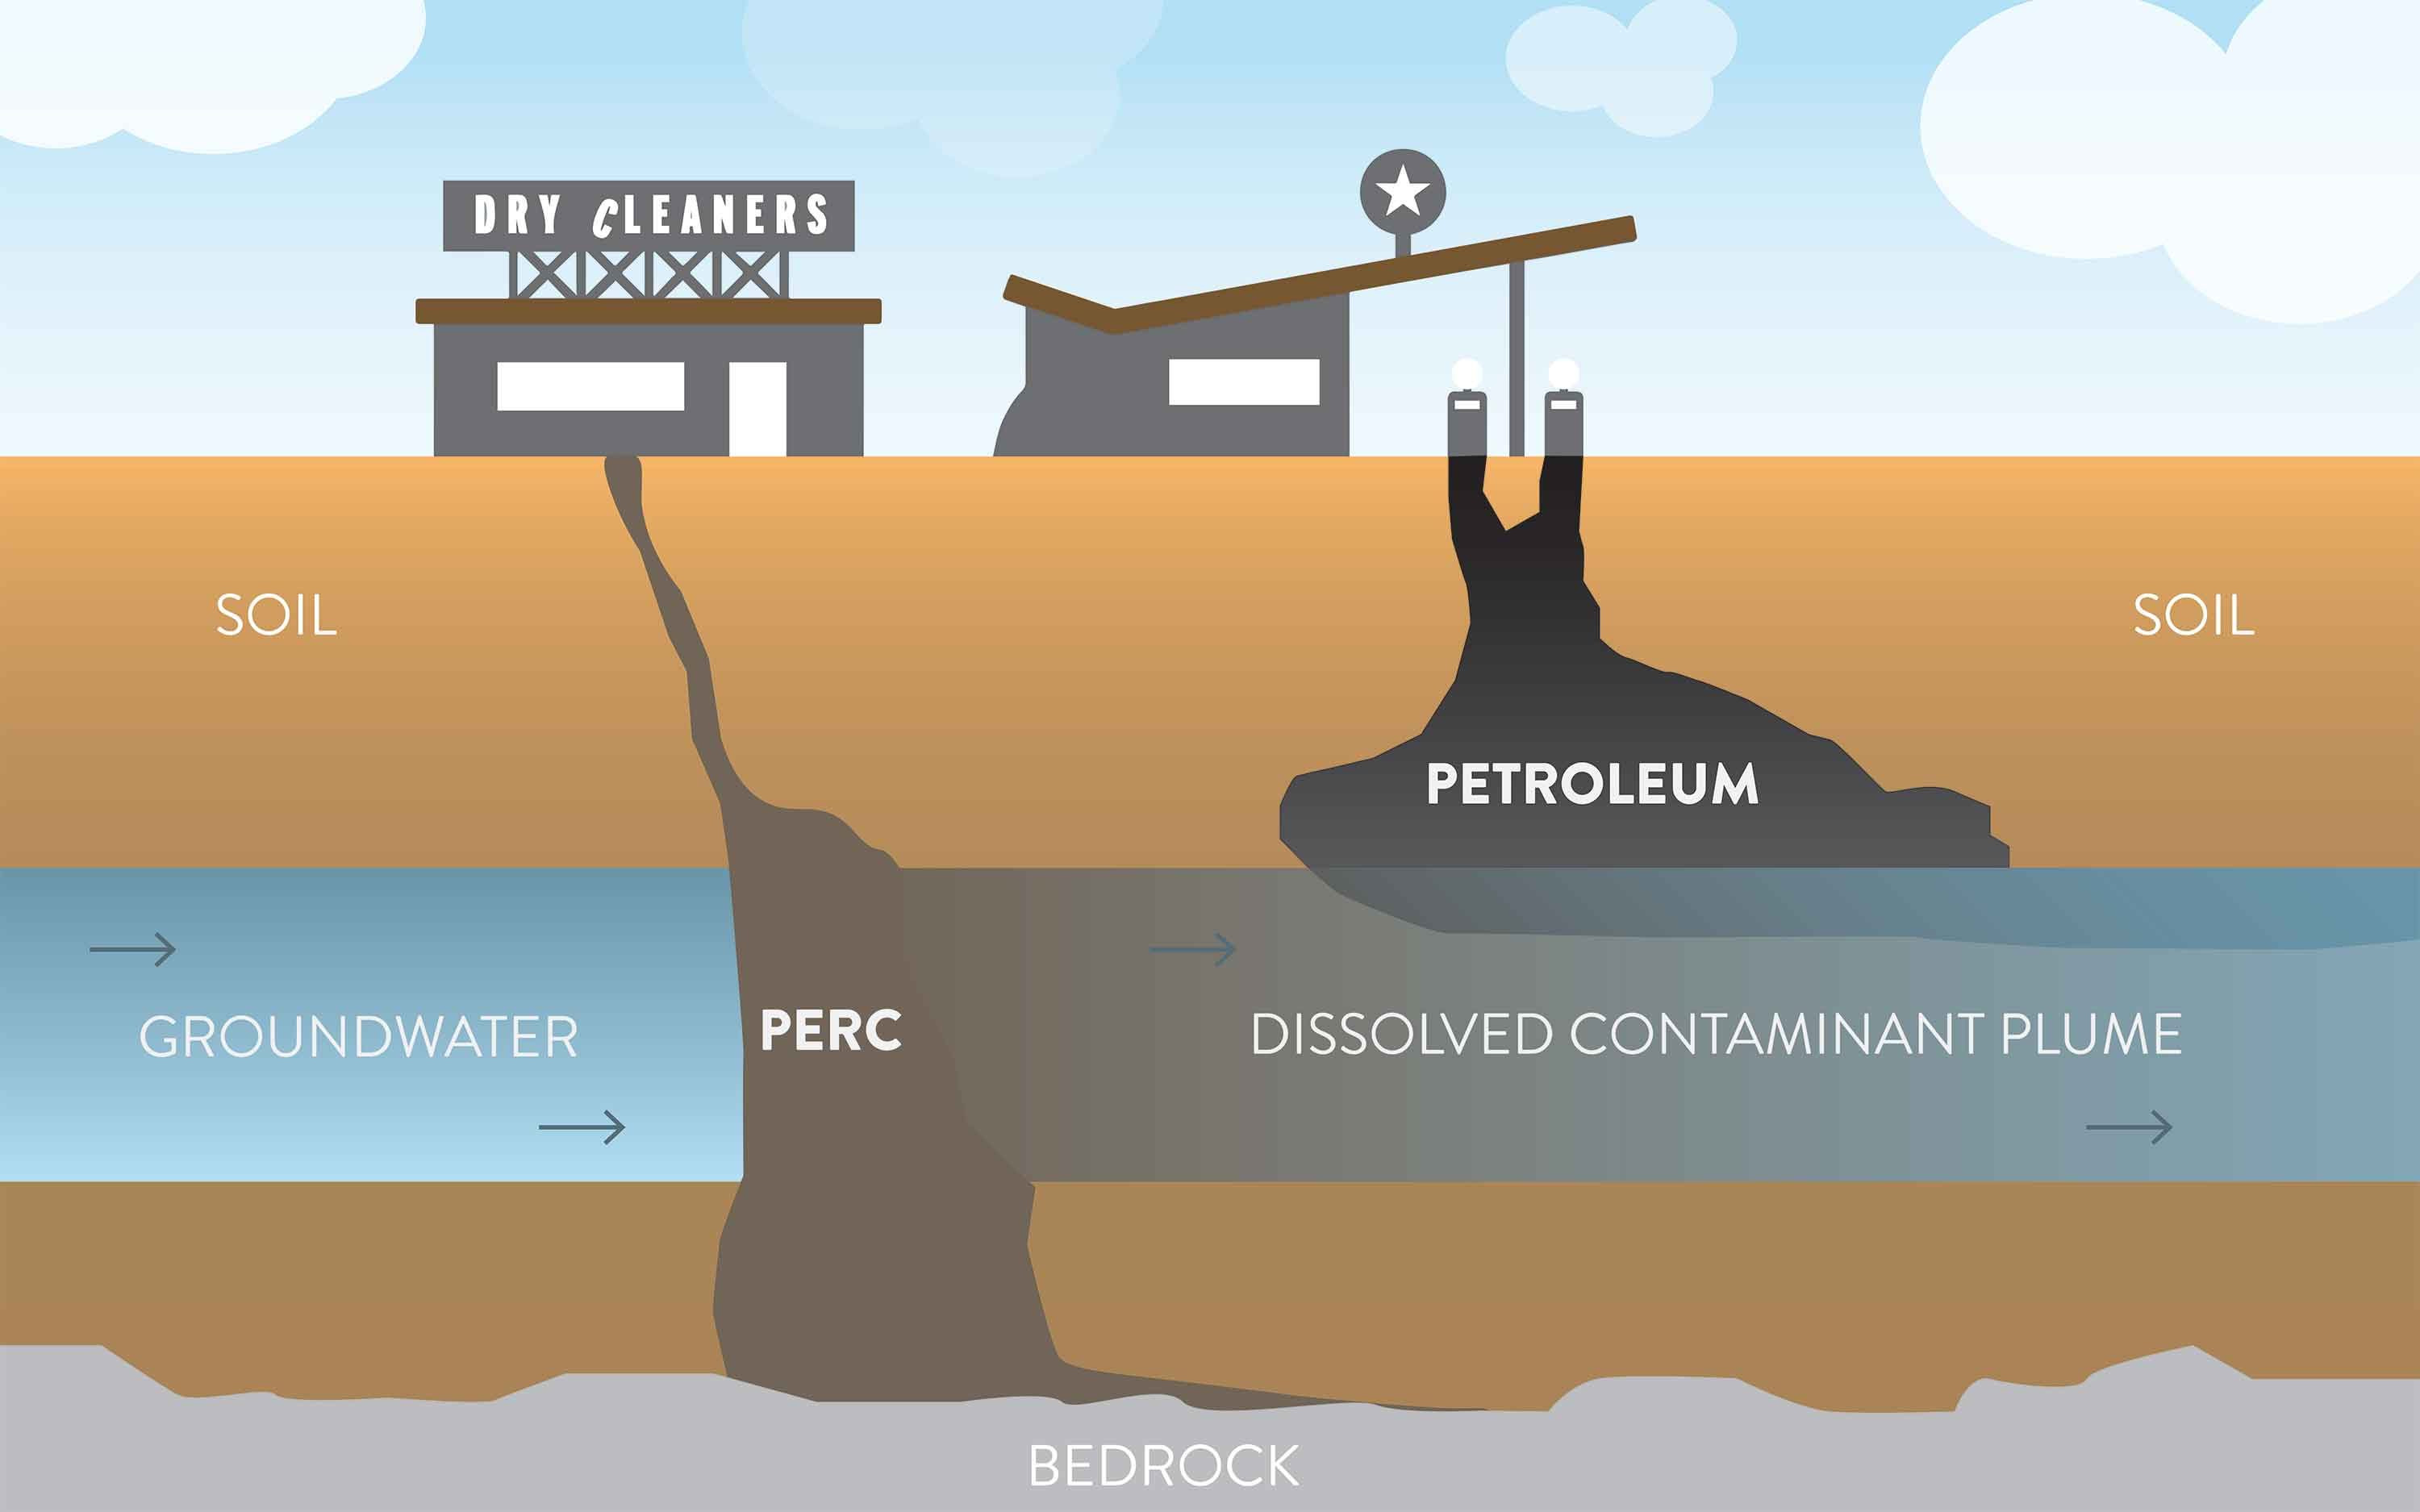 Illustration of perc contamination sinking through the groundwater to the bedrock while the petroleum sits on top of the groundwater